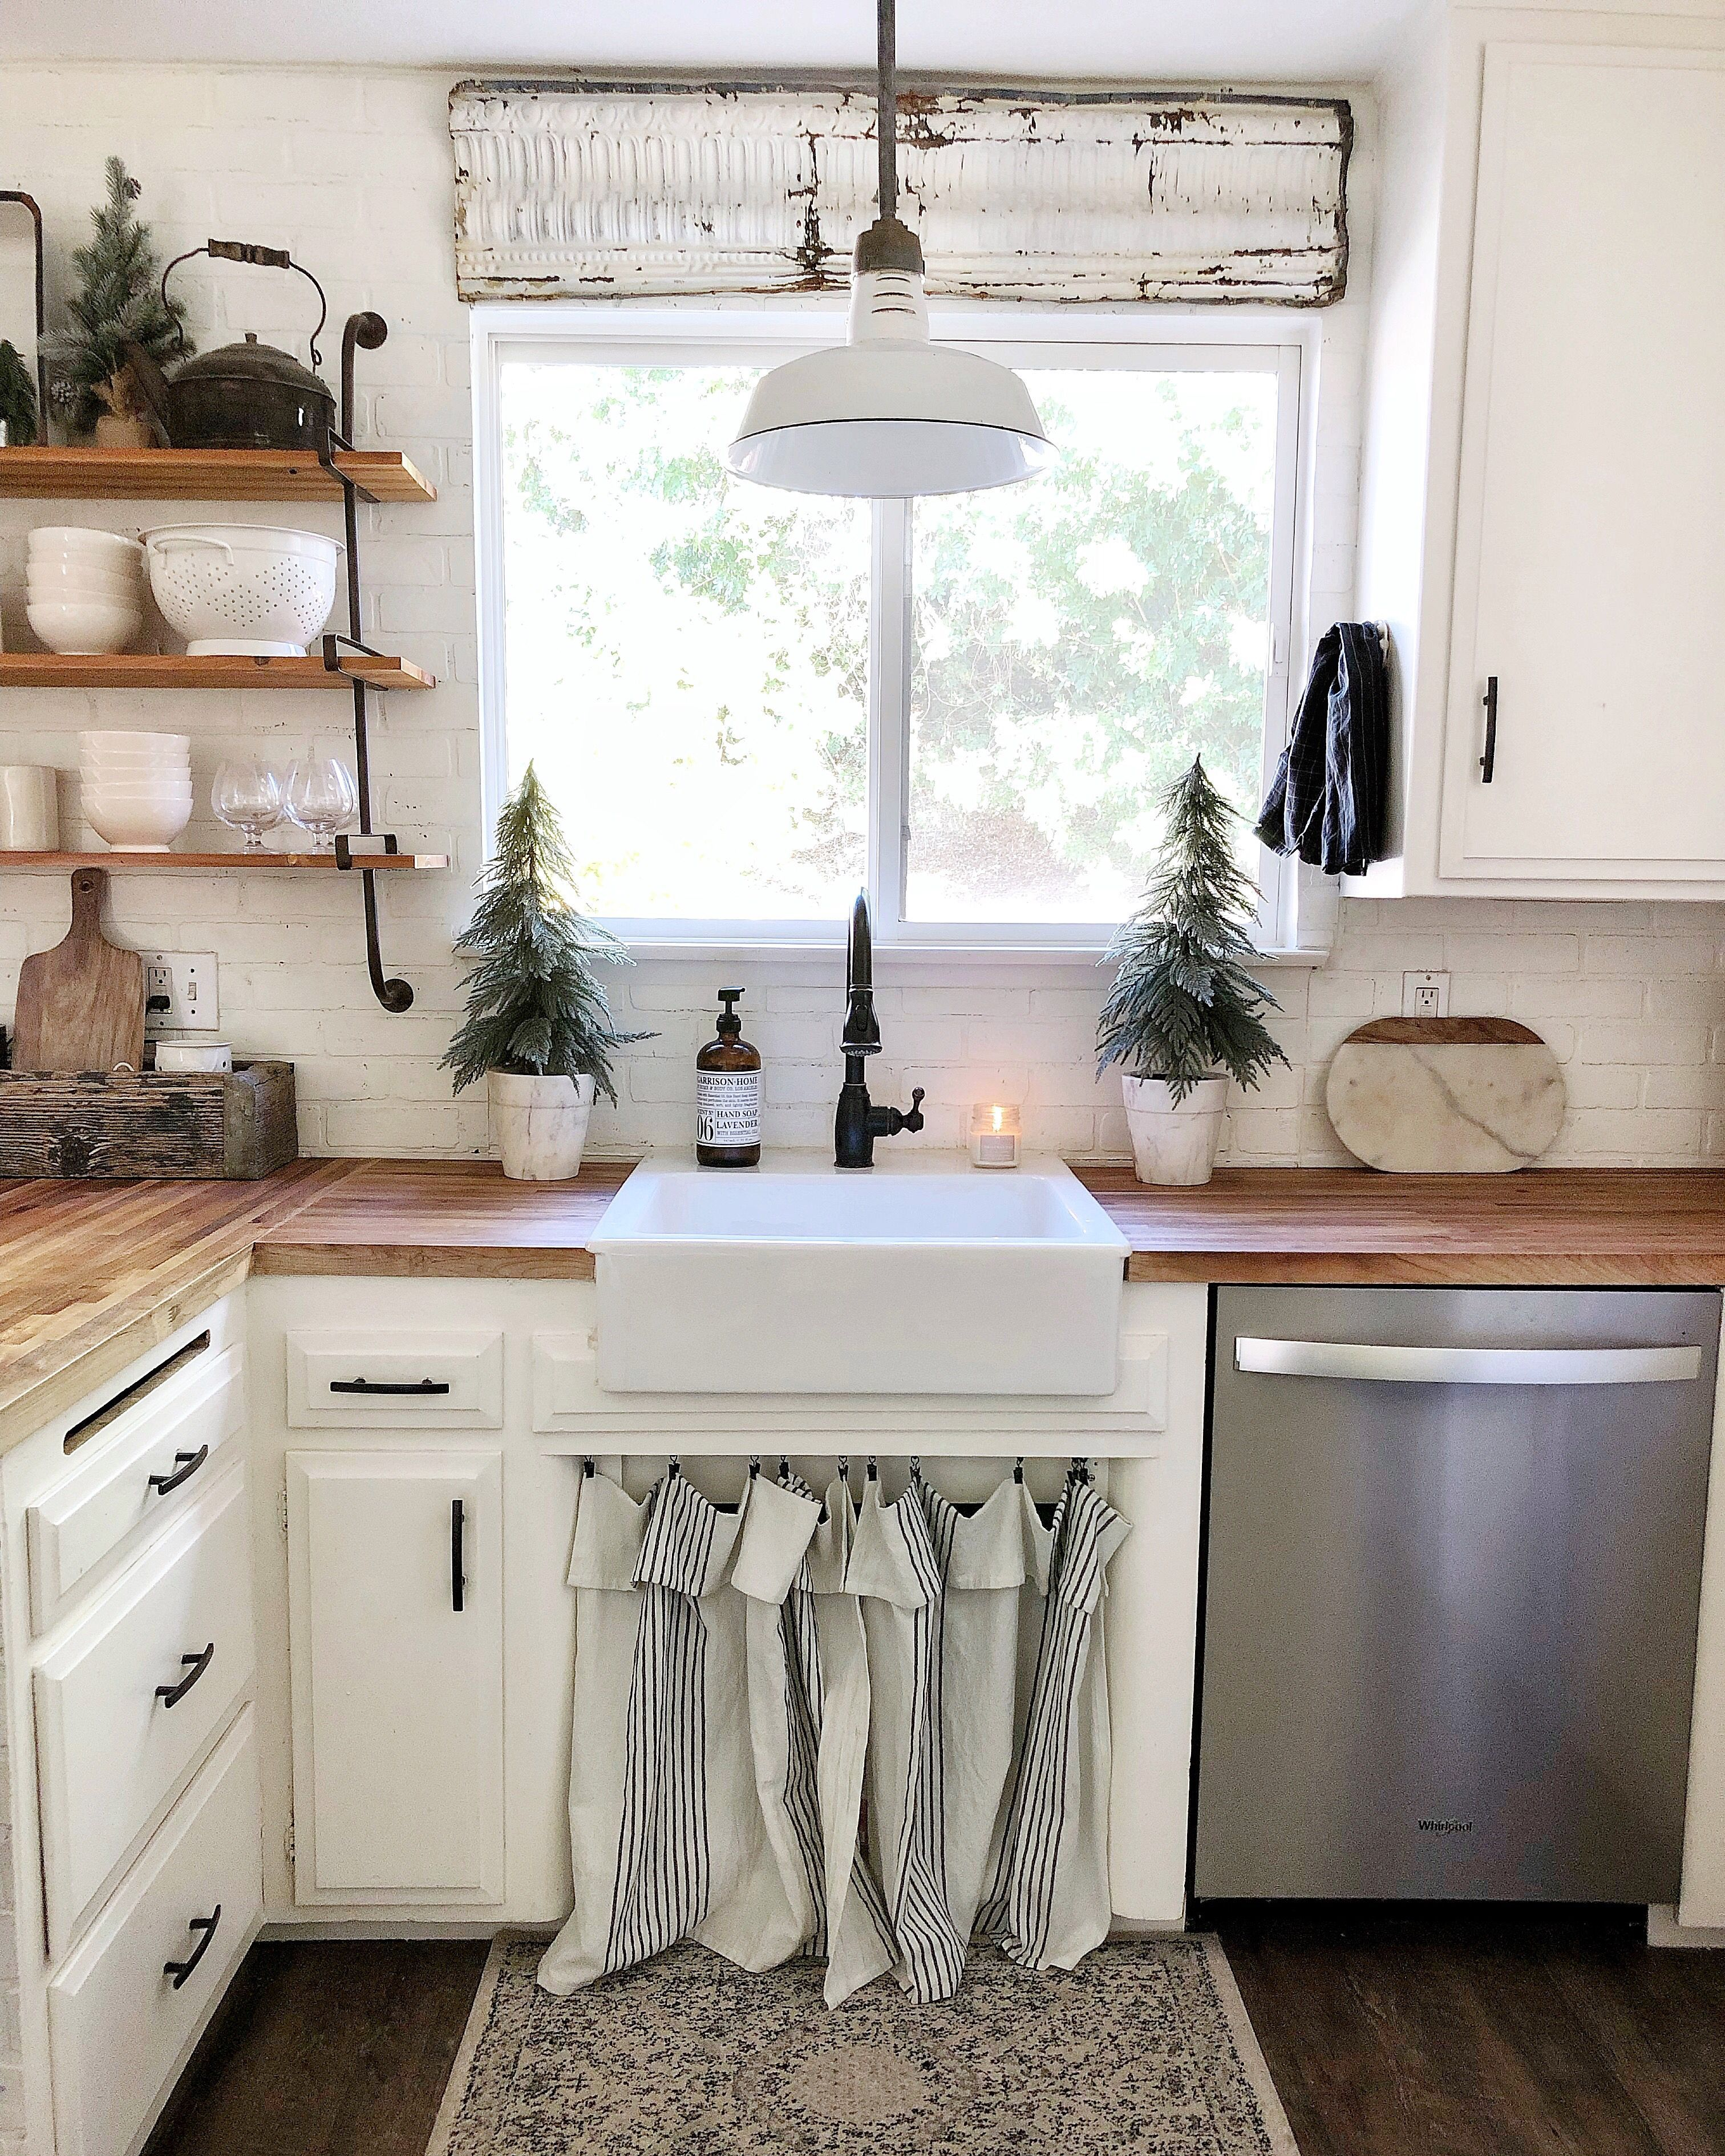 Wonderful Snap Shots Farmhouse Sink Kitchen Strategies Being From Ireland And Having Includ In 2021 Farmhouse Kitchen Countertops Kitchen Style Farmhouse Kitchen Decor